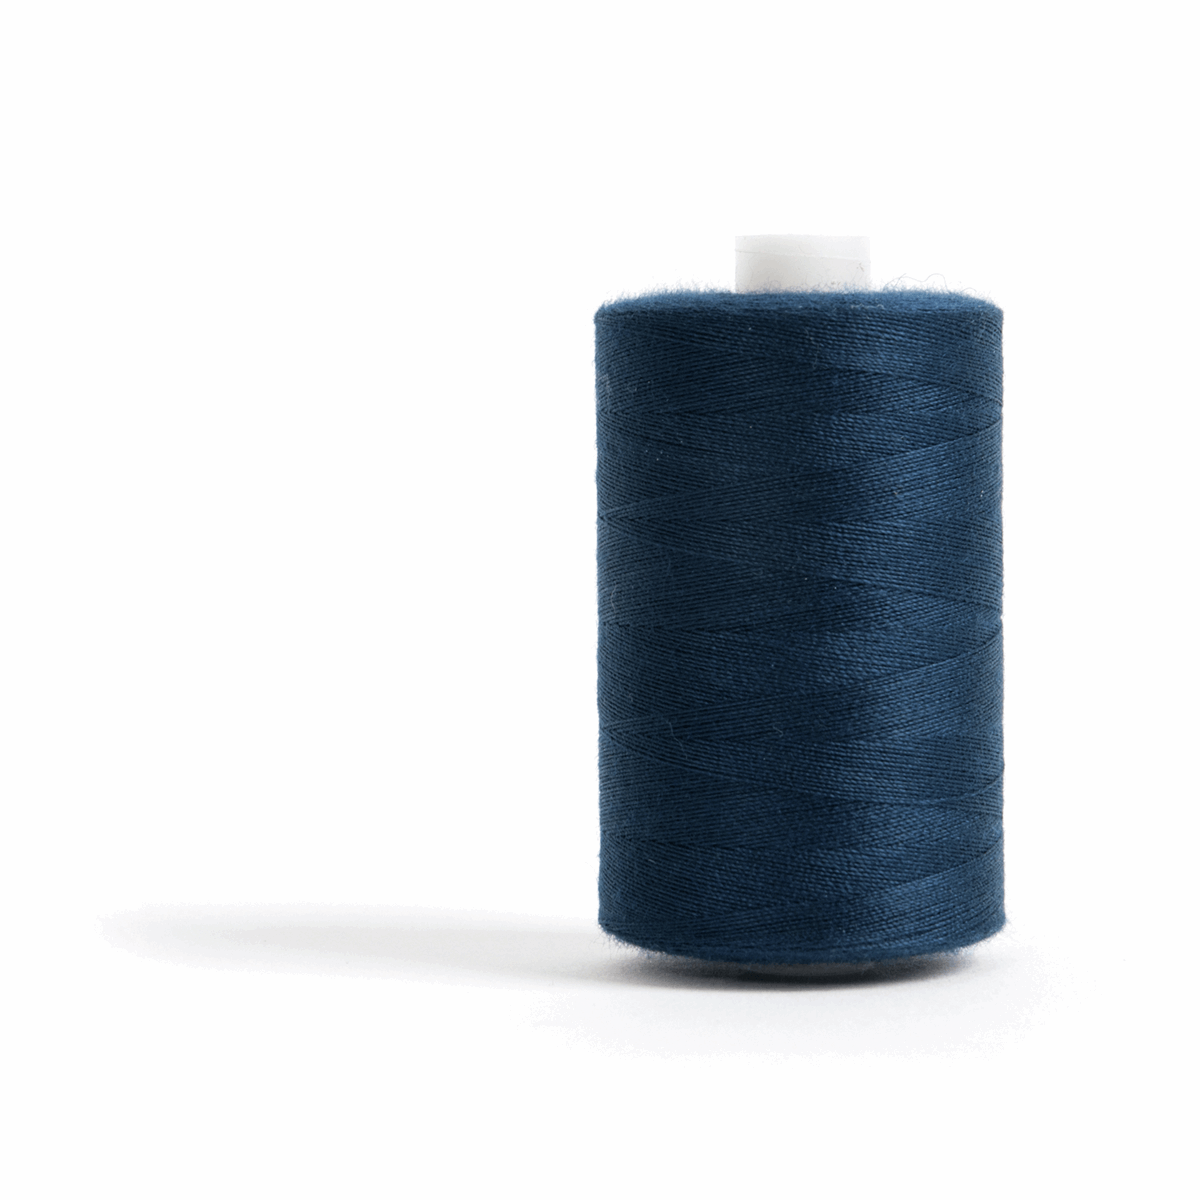 Thread 1000m Extra Large - Navy - for Sewing and Overlocking